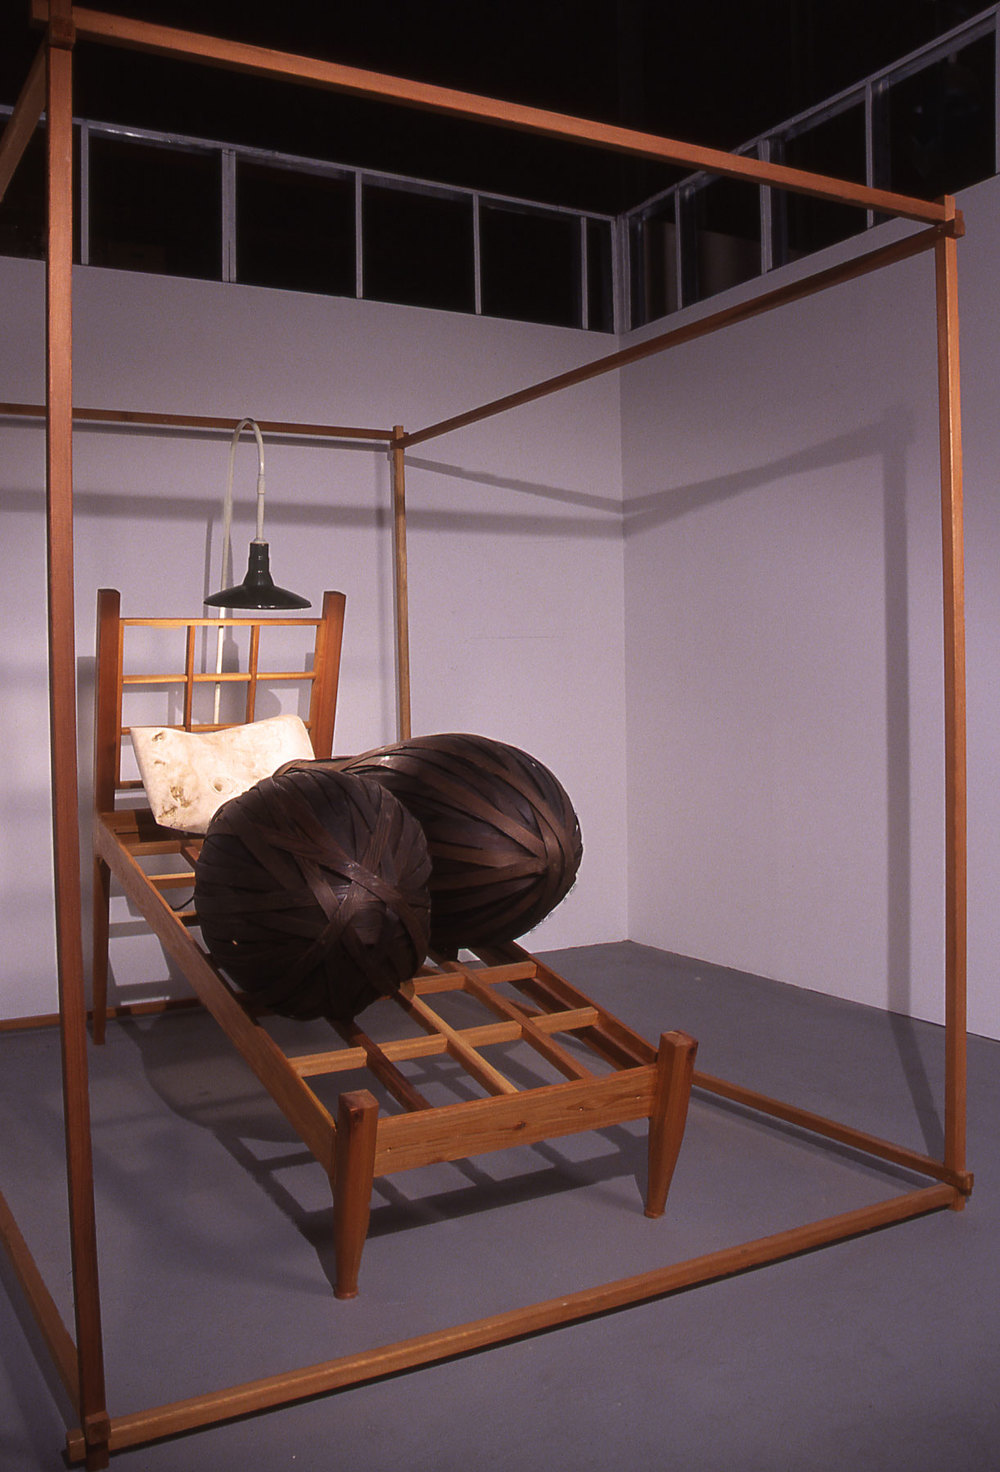 """Sleeping Double in a Single Bed"", wood sculpture 8' h x 7' w x 8' d ; ebonized Cedar, carved Poplar, electric light; © Tom Gormally"